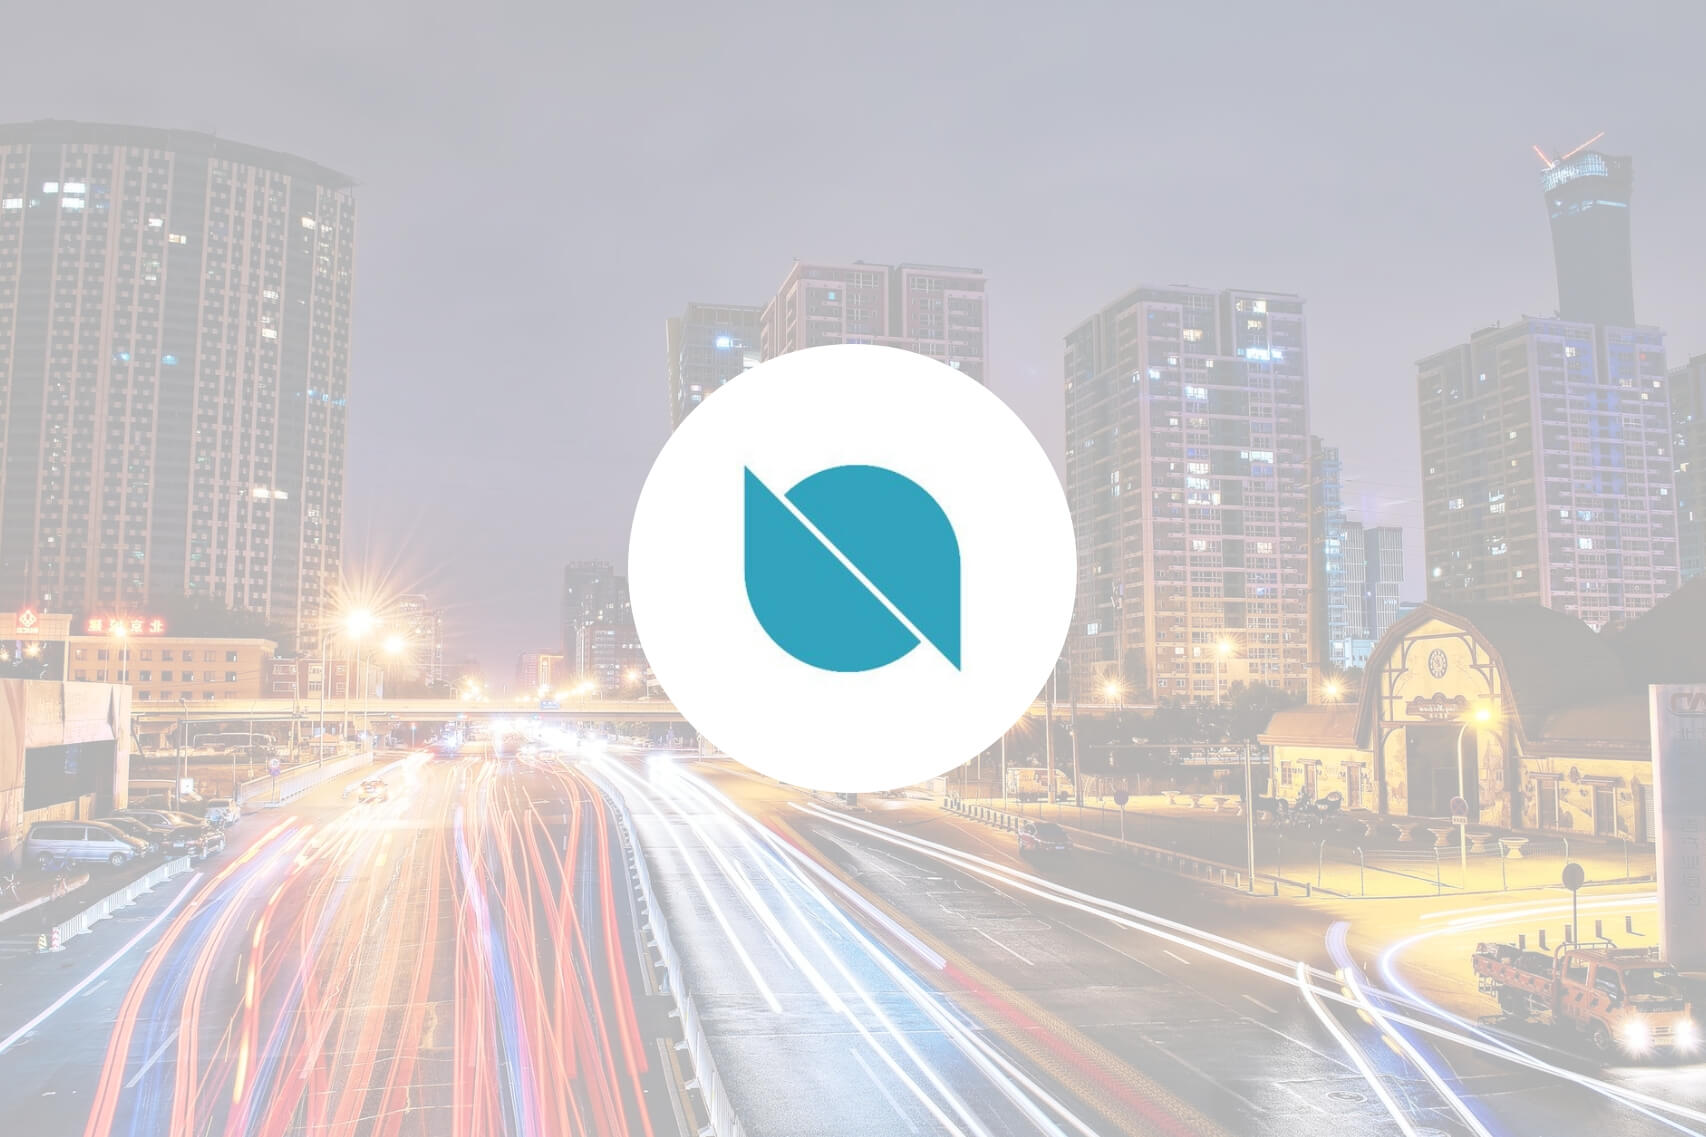 Ontology Continues to Build High-Profile Partnerships — Can the Bulls Defend $0.50 to Prevent a Further Decline in Price?